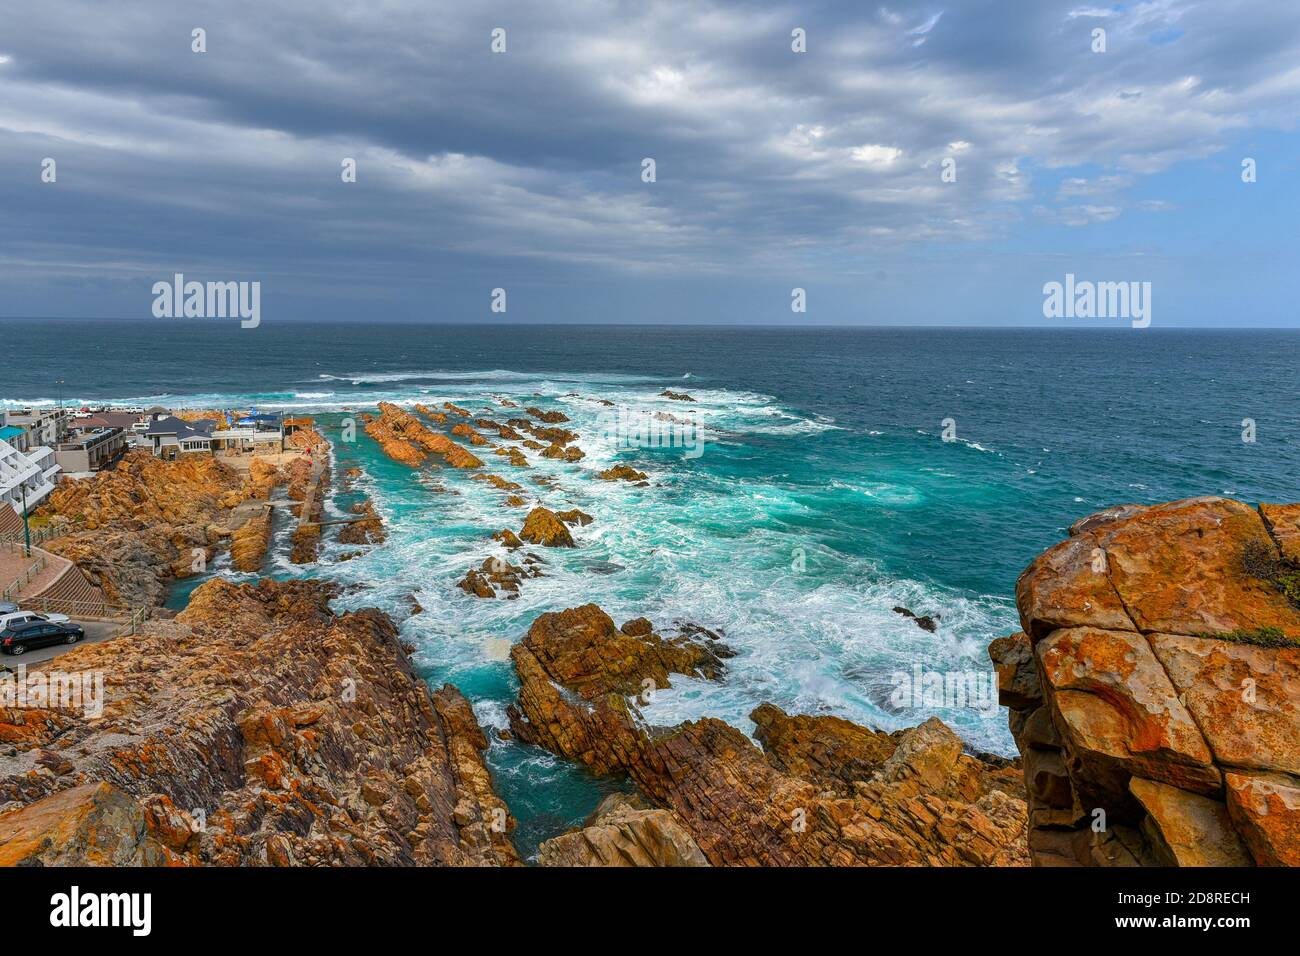 The magnificent view from the Cape St Blaize Lighthouse, Mossel Bay, Garden Route, South Africa Stock Photo